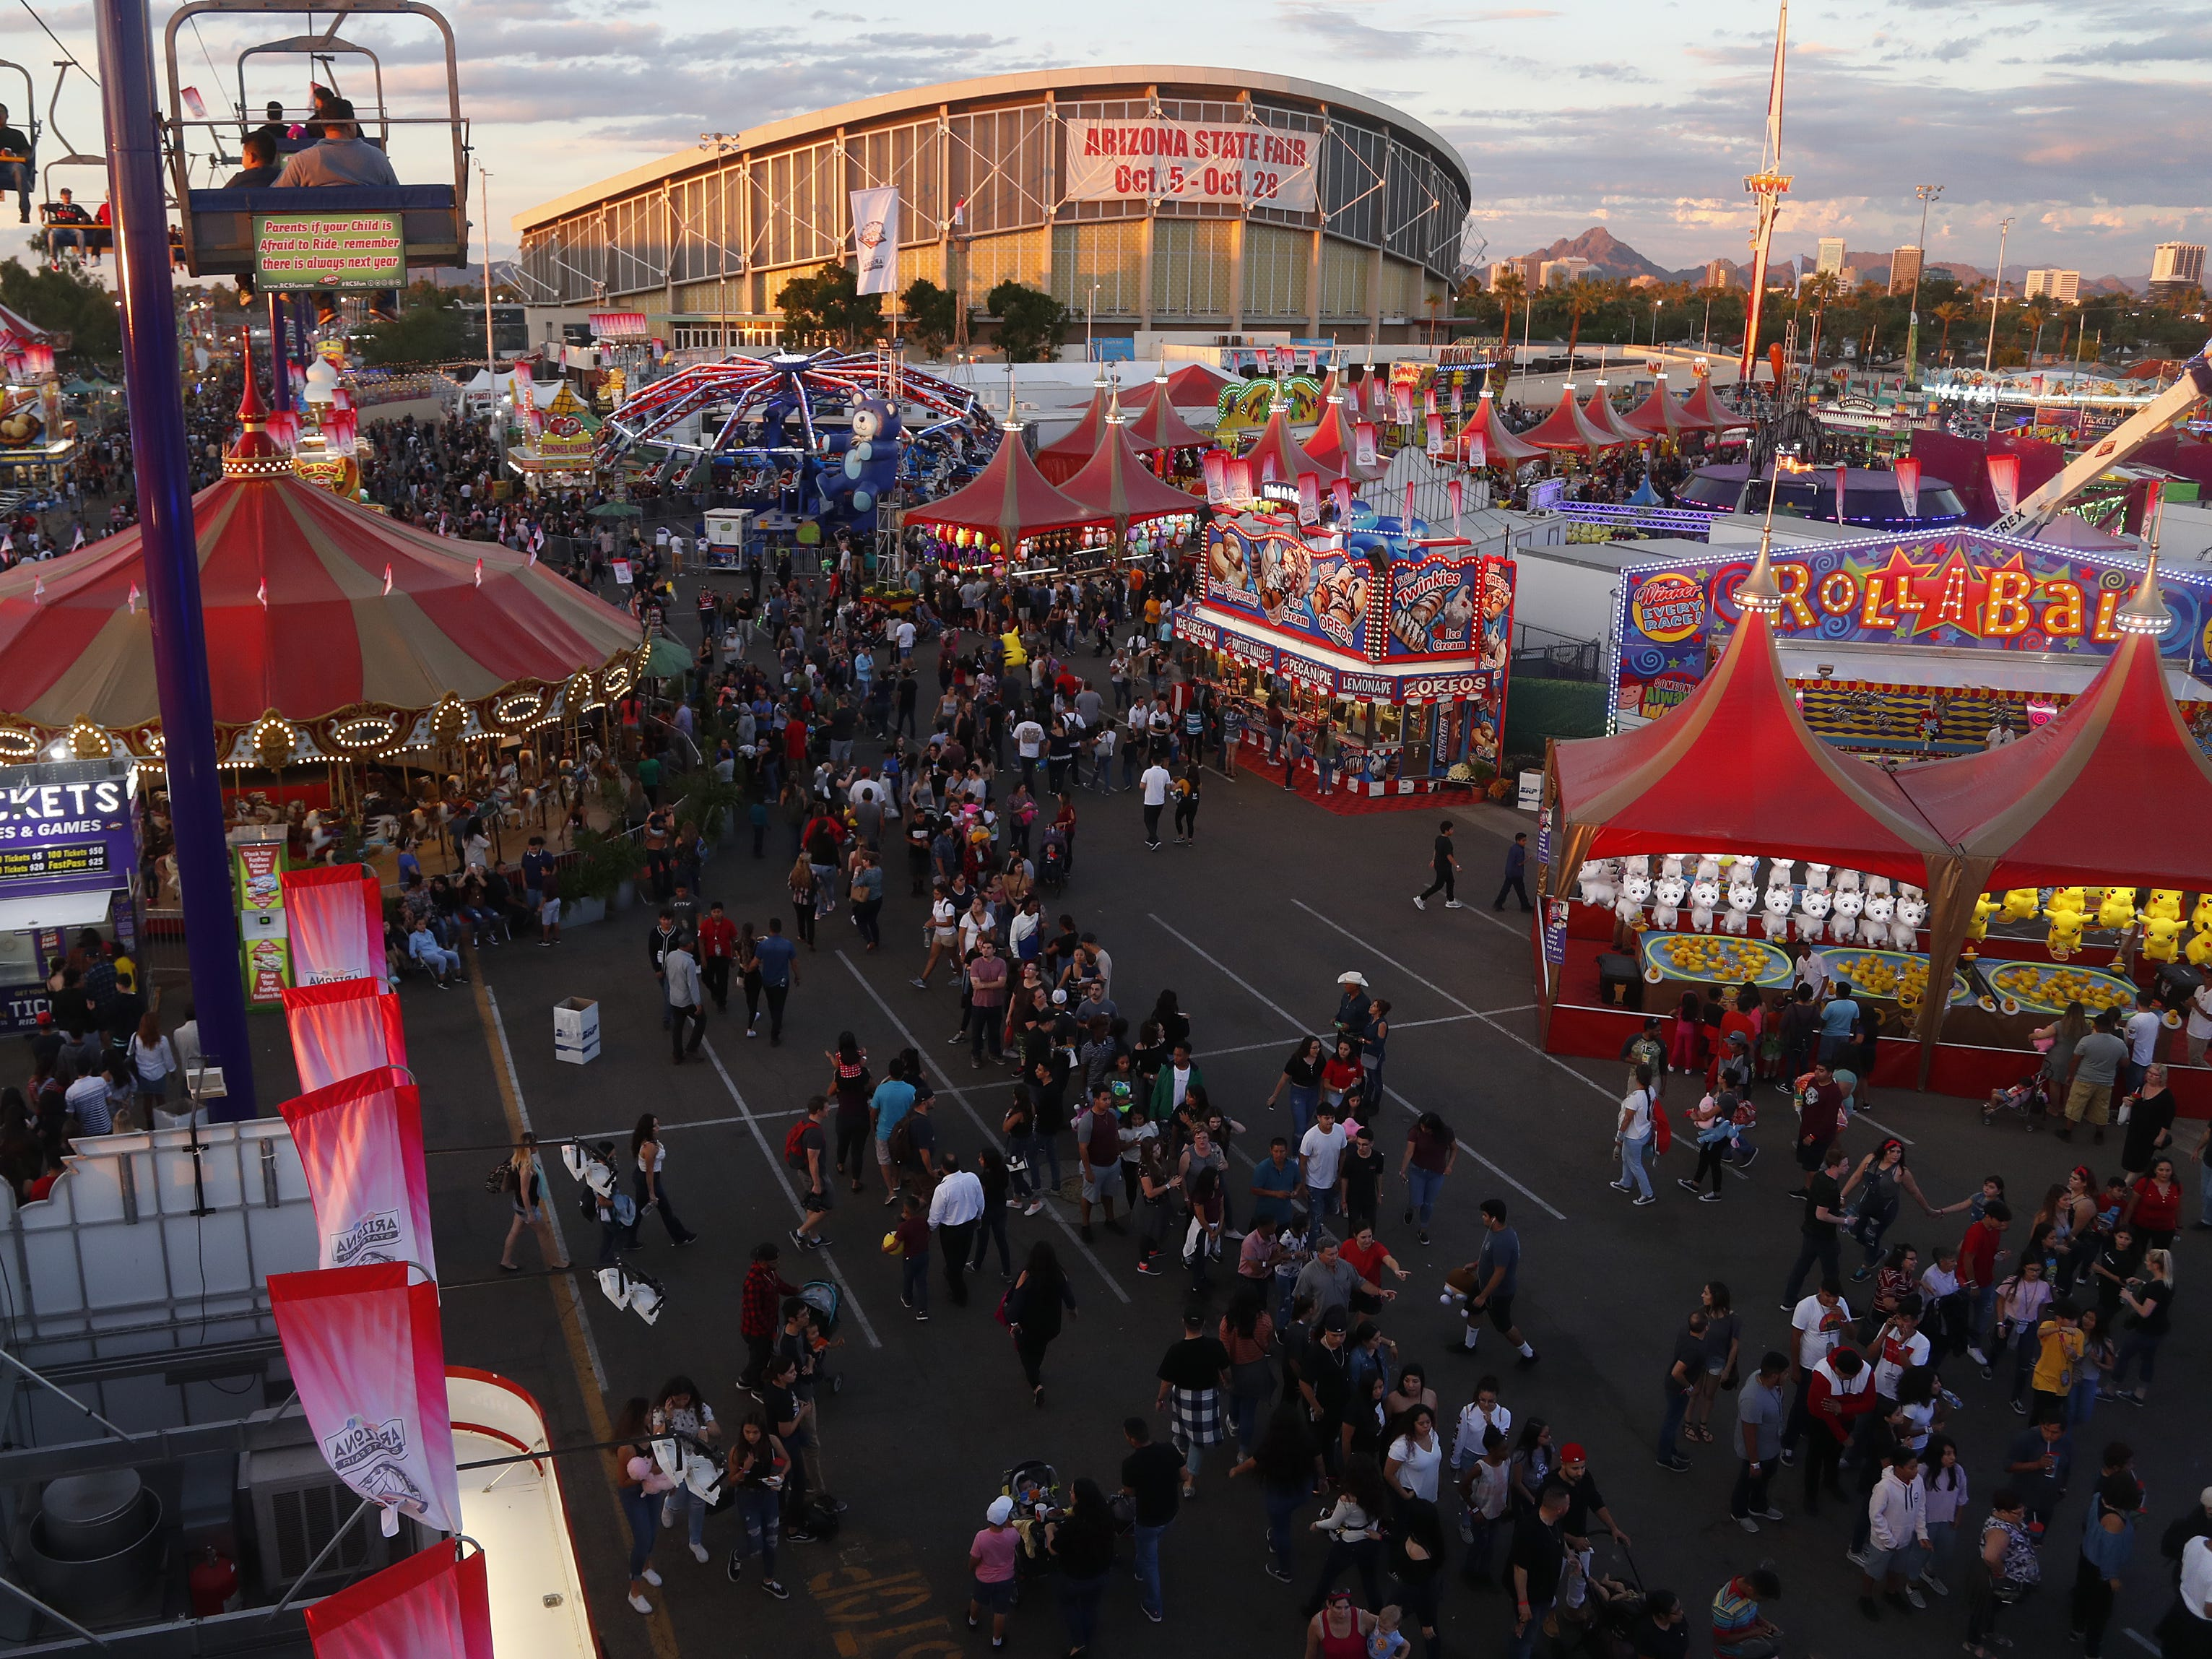 People make their way around at the Arizona State Fair in Phoenix, Ariz. on October 21, 2018.